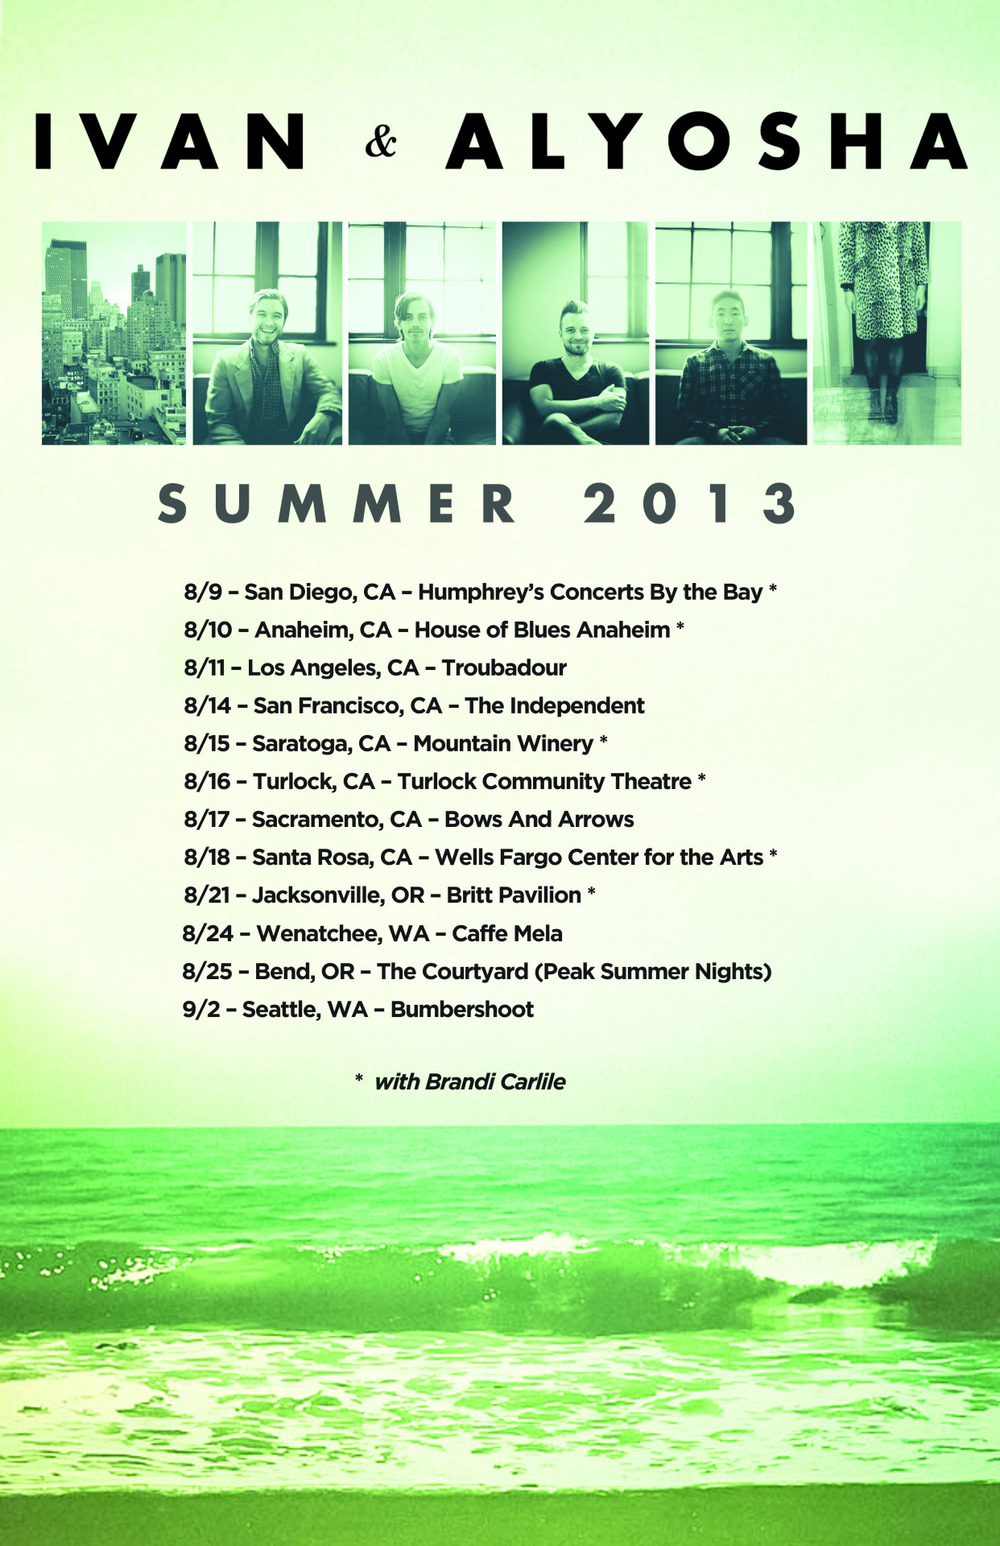 Summer Tour Dates!!! Can't wait to get back on the road w/ Brandi Carlile and Crew!